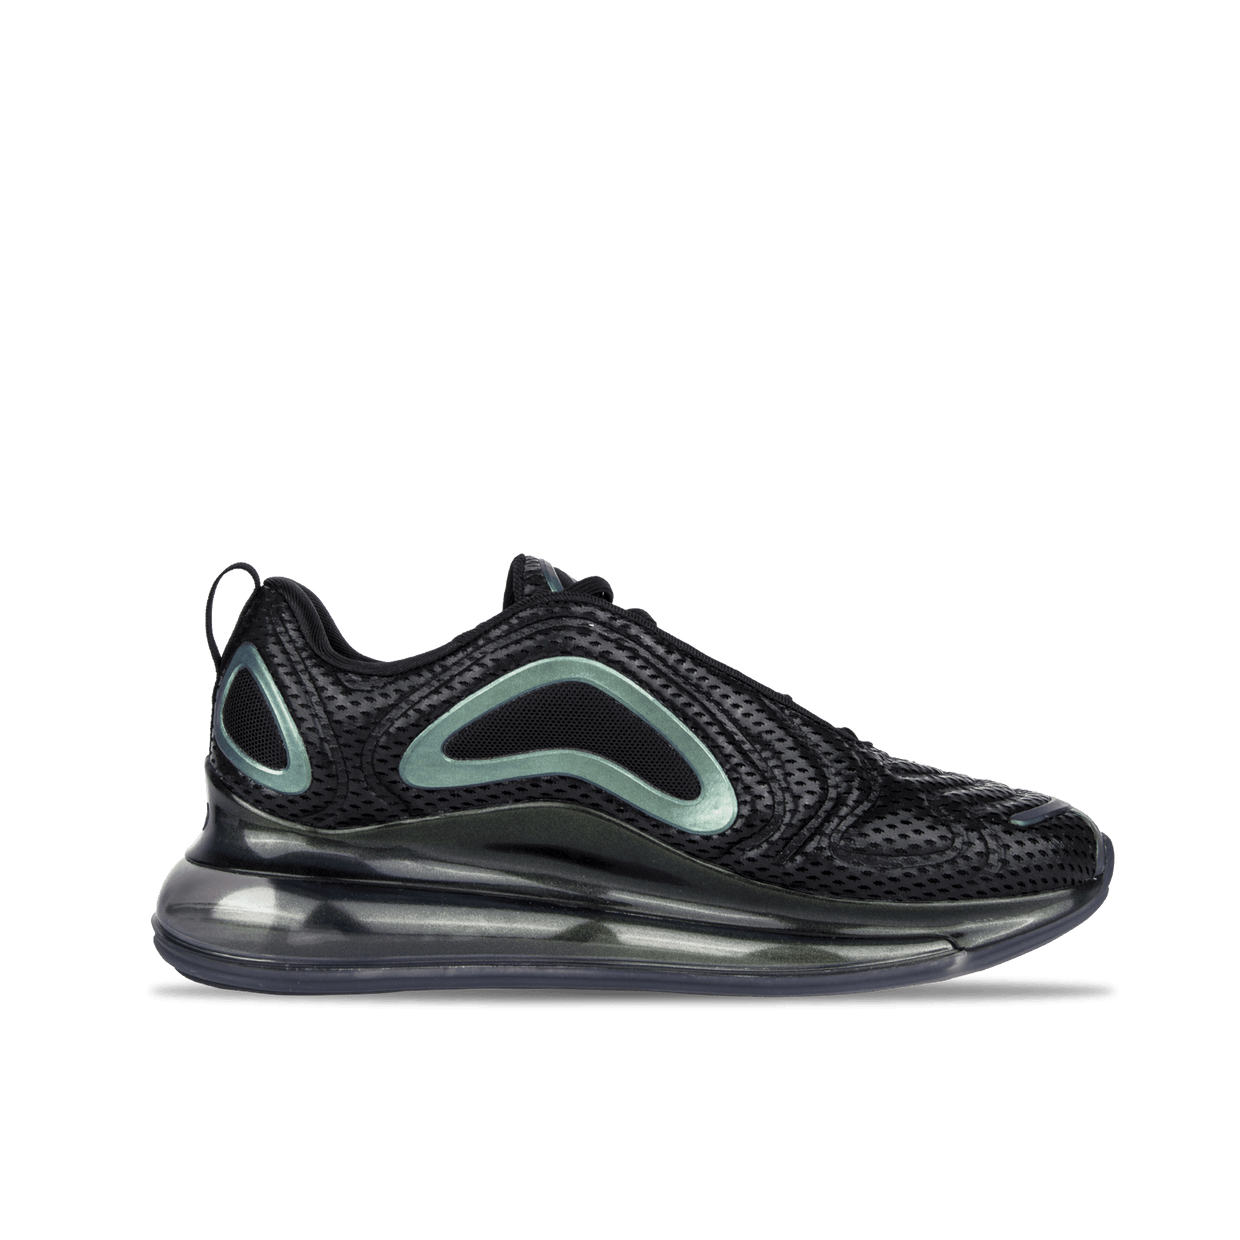 Air Max 720 - Black/Metallic Silver